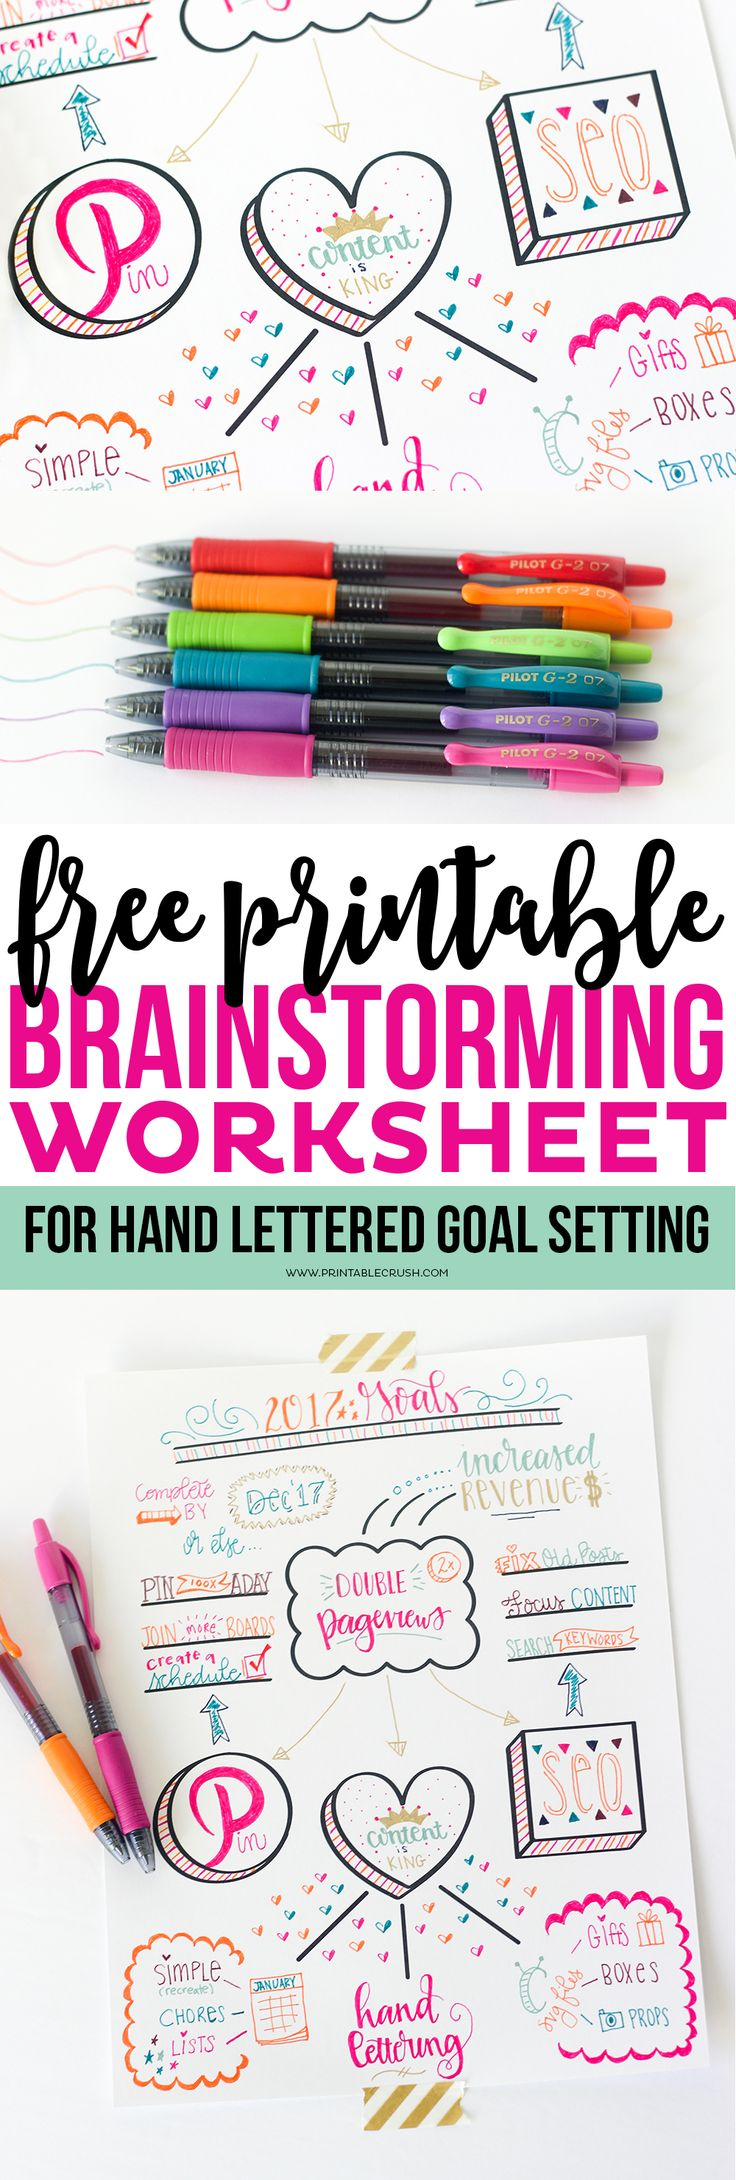 202 best Goals images on Pinterest | Productivity, Goal settings and ...